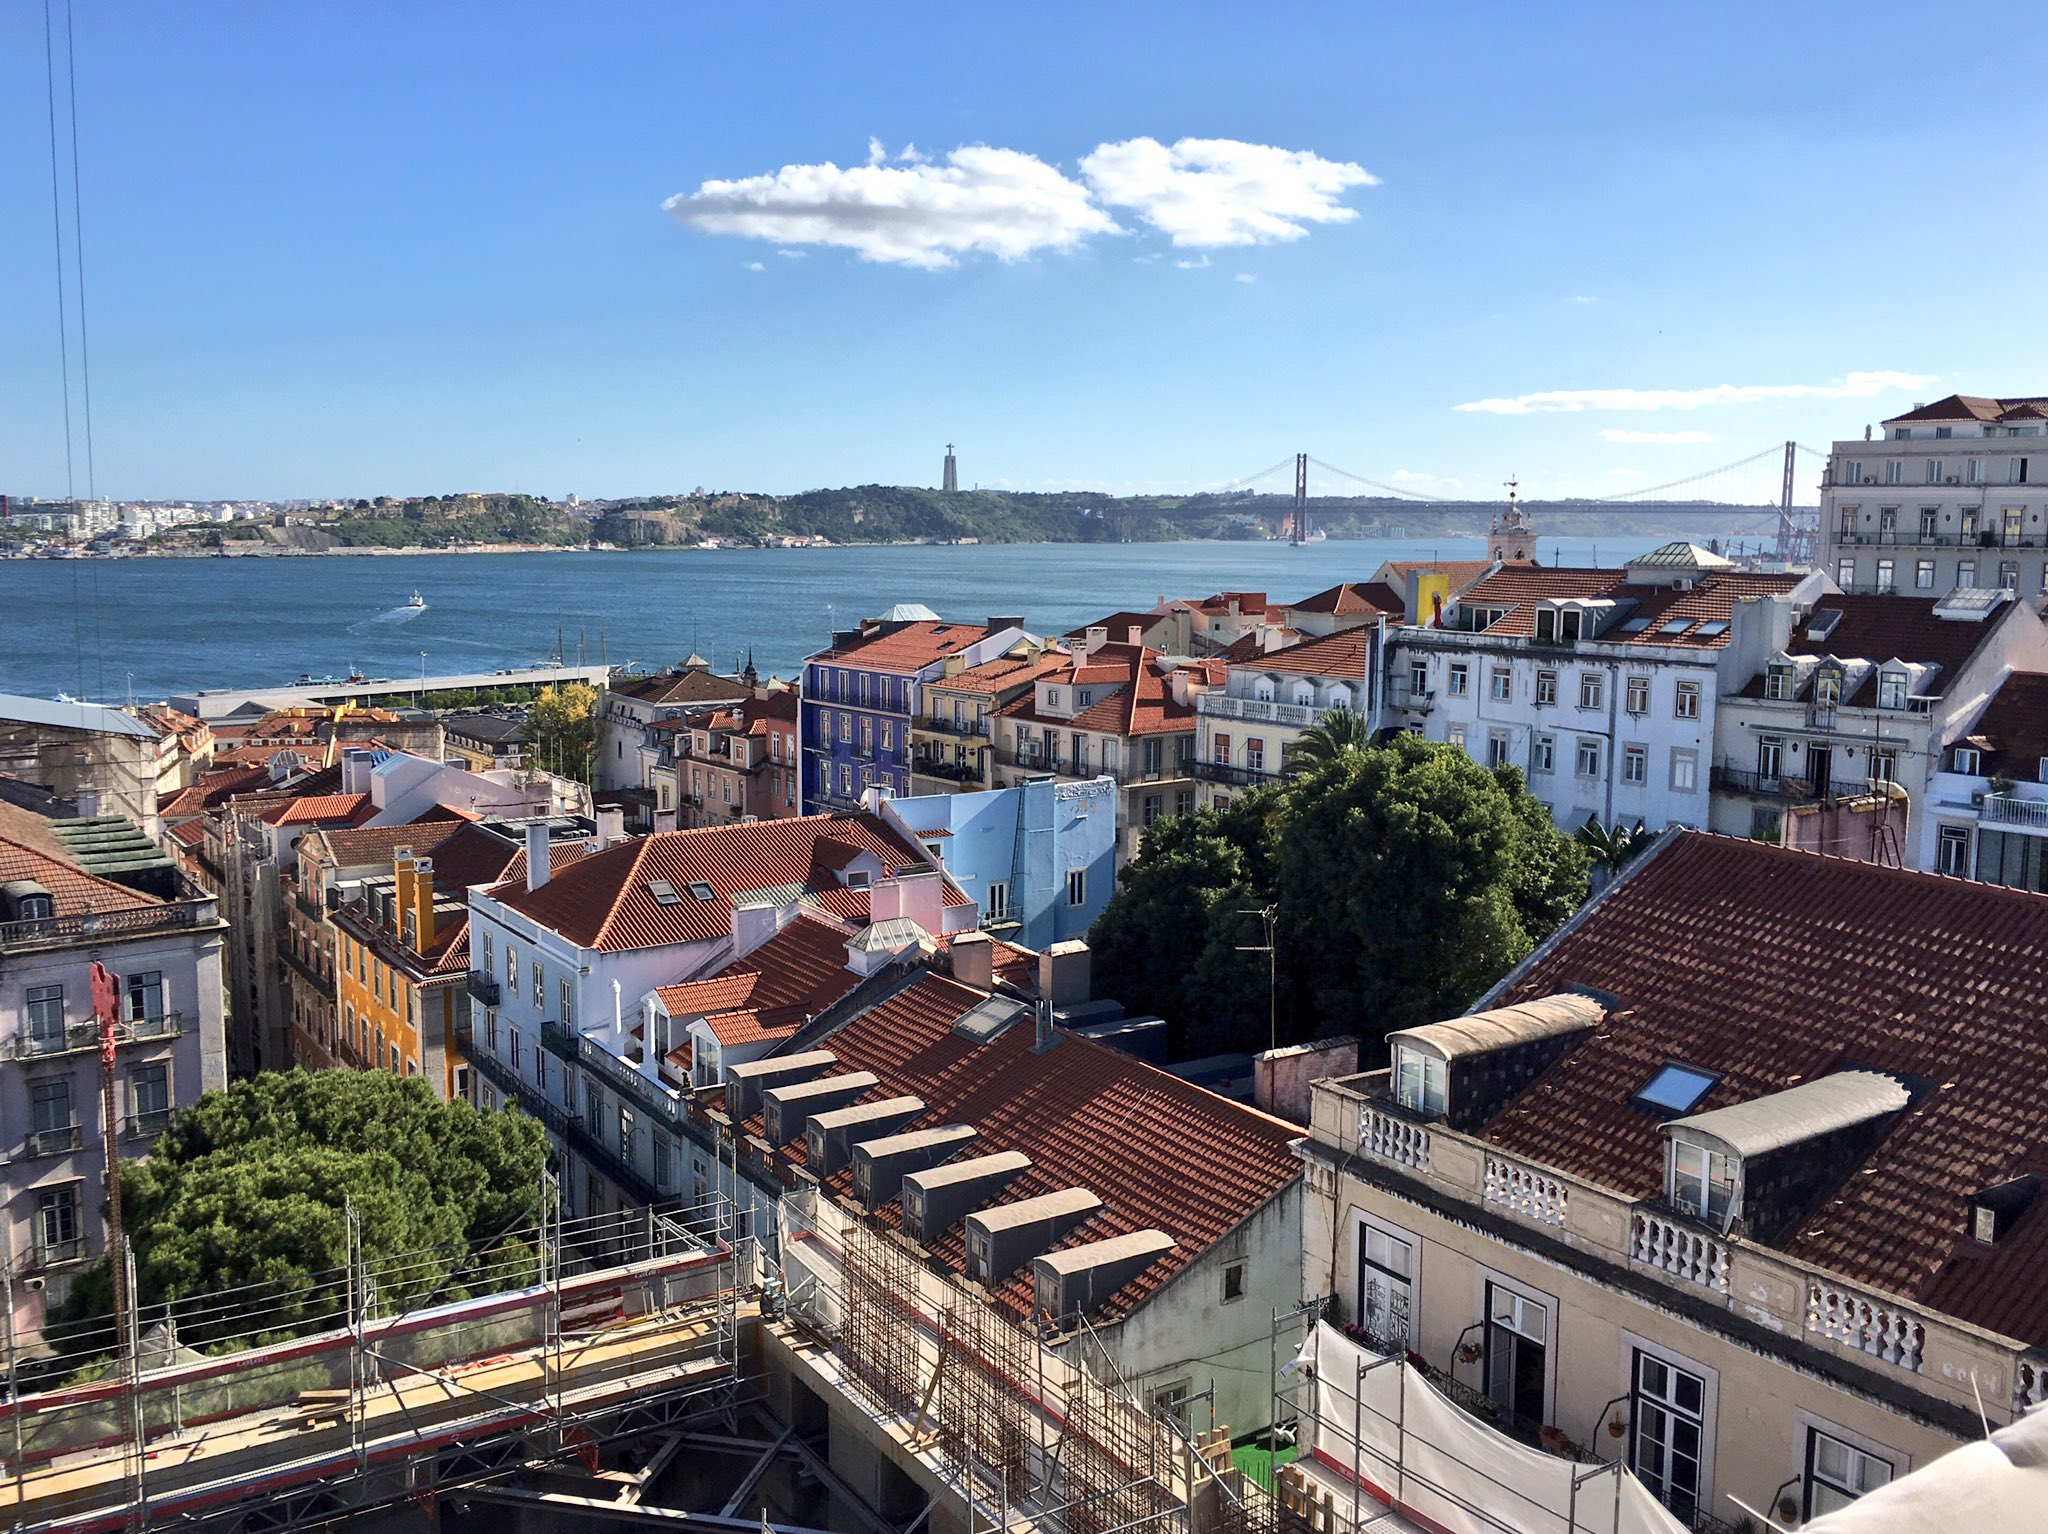 Lisbon: for when you want both Cristo Redentor and the Golden Gate Bridge in the same city. https://t.co/ZpTwpWg2vZ